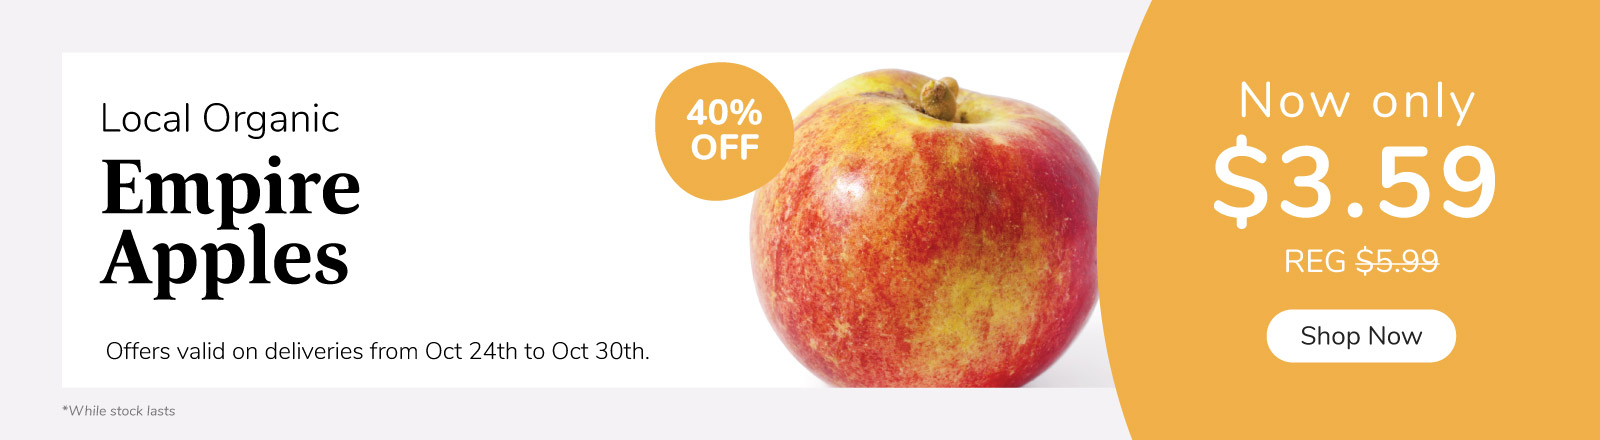 Hot Deal on organic local apples